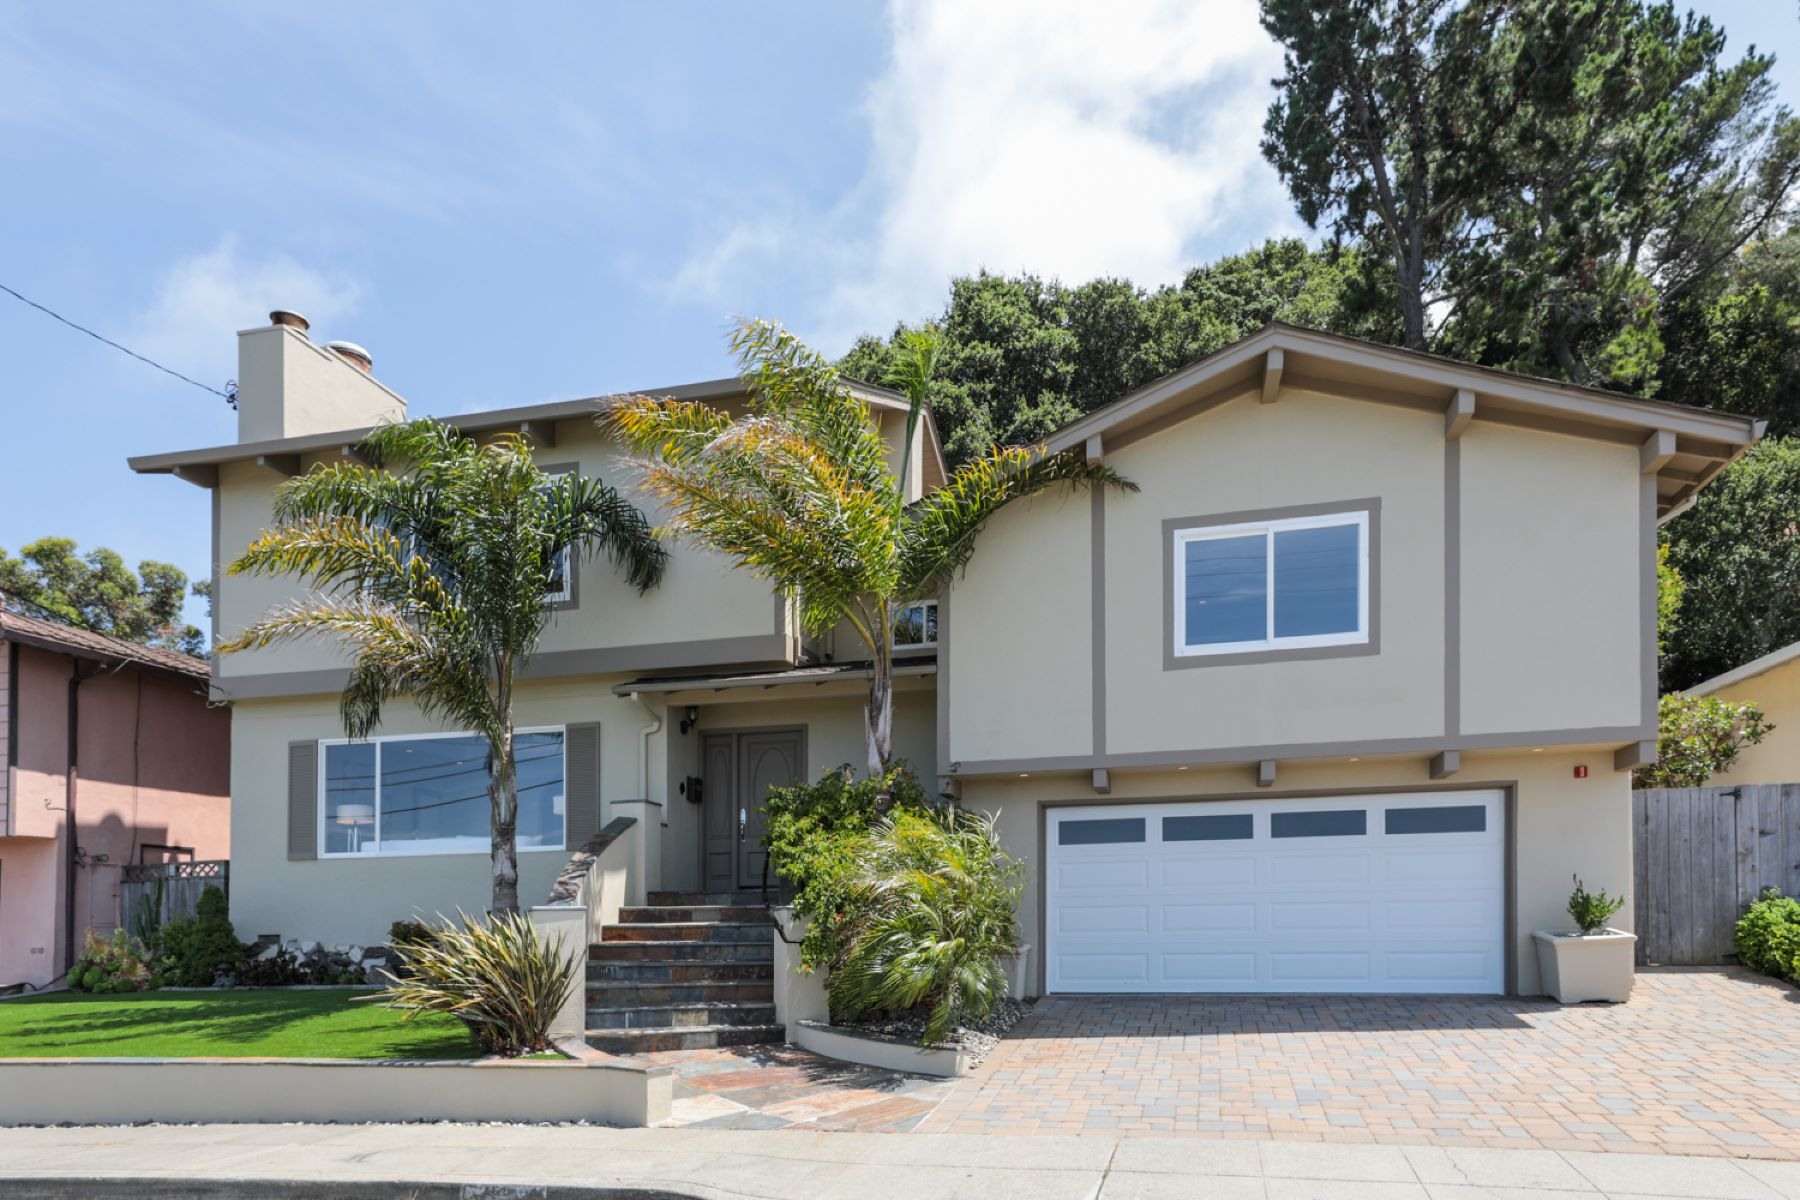 Single Family Homes for Active at 629 42nd Avenue, San Mateo 629 42nd Avenue San Mateo, California 94403 United States